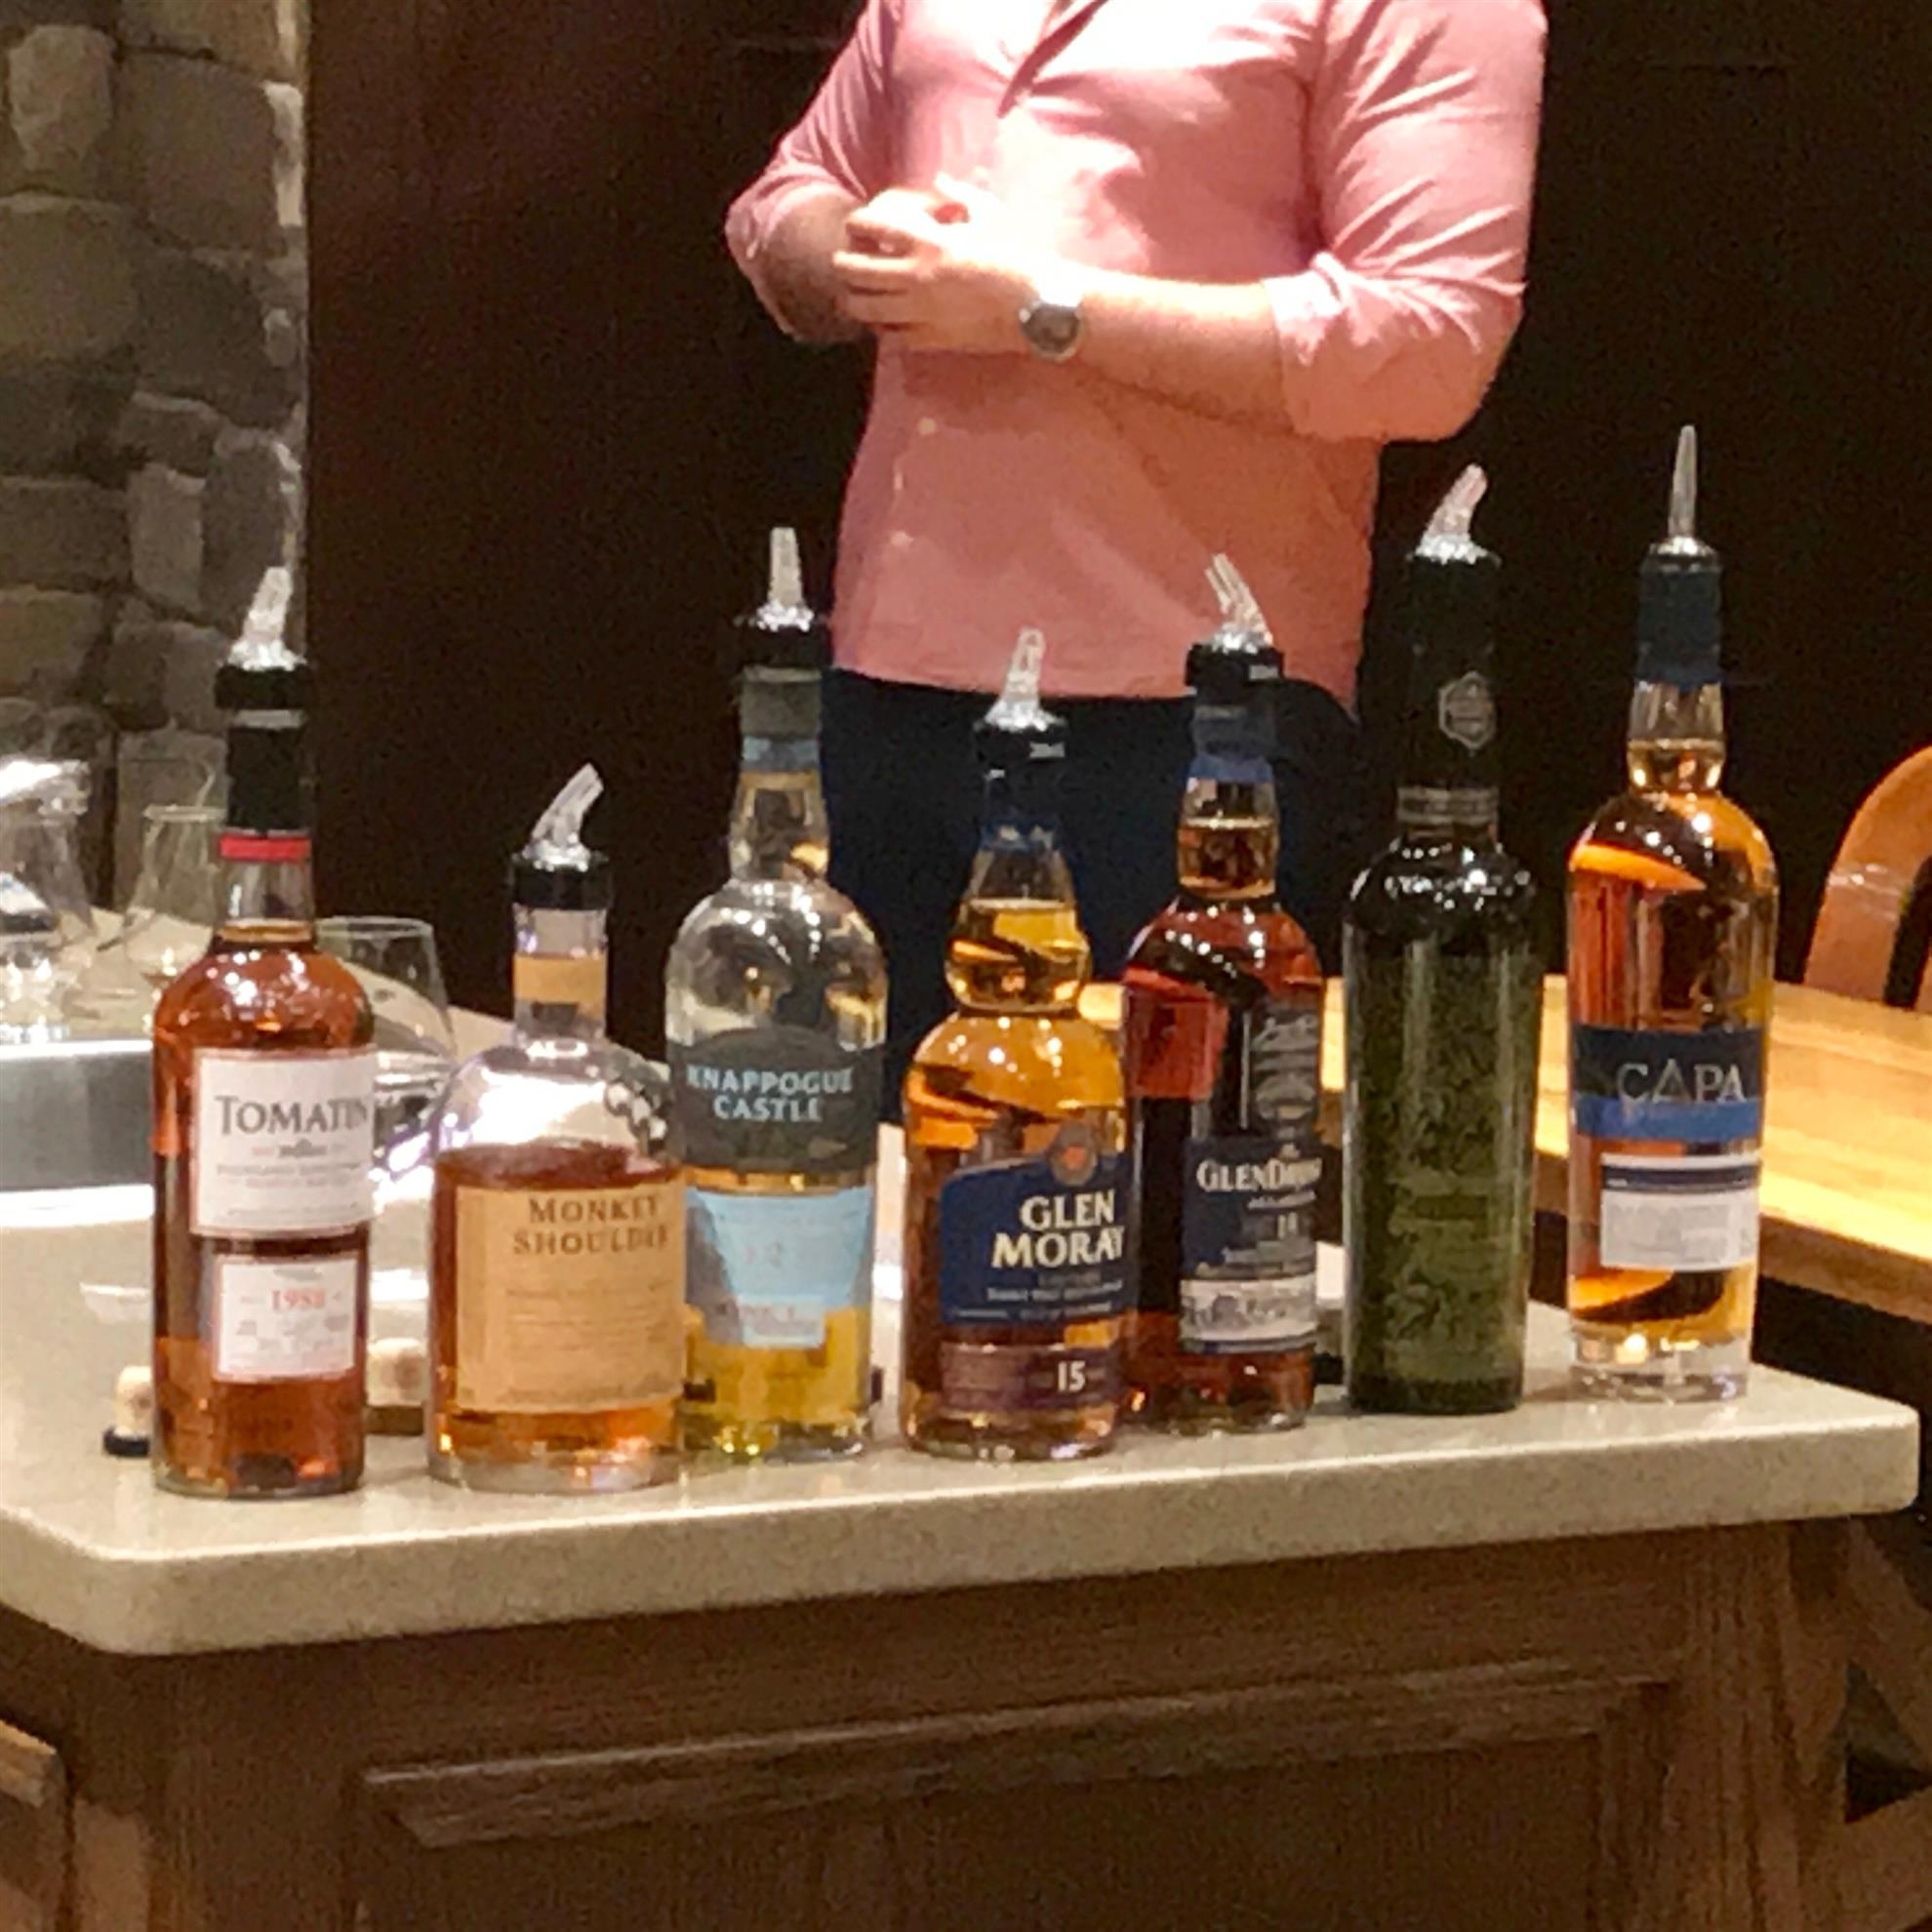 Stories Rotary Club Of Edmonton Strathcona Vanish White Liquid 500 Ml Bottle 2 Pouch 450 Flash S Thank You To Don Henry Heather De Kok And Eric Solash For Arranging The Much Anticipated Scotch Tasting On May 16